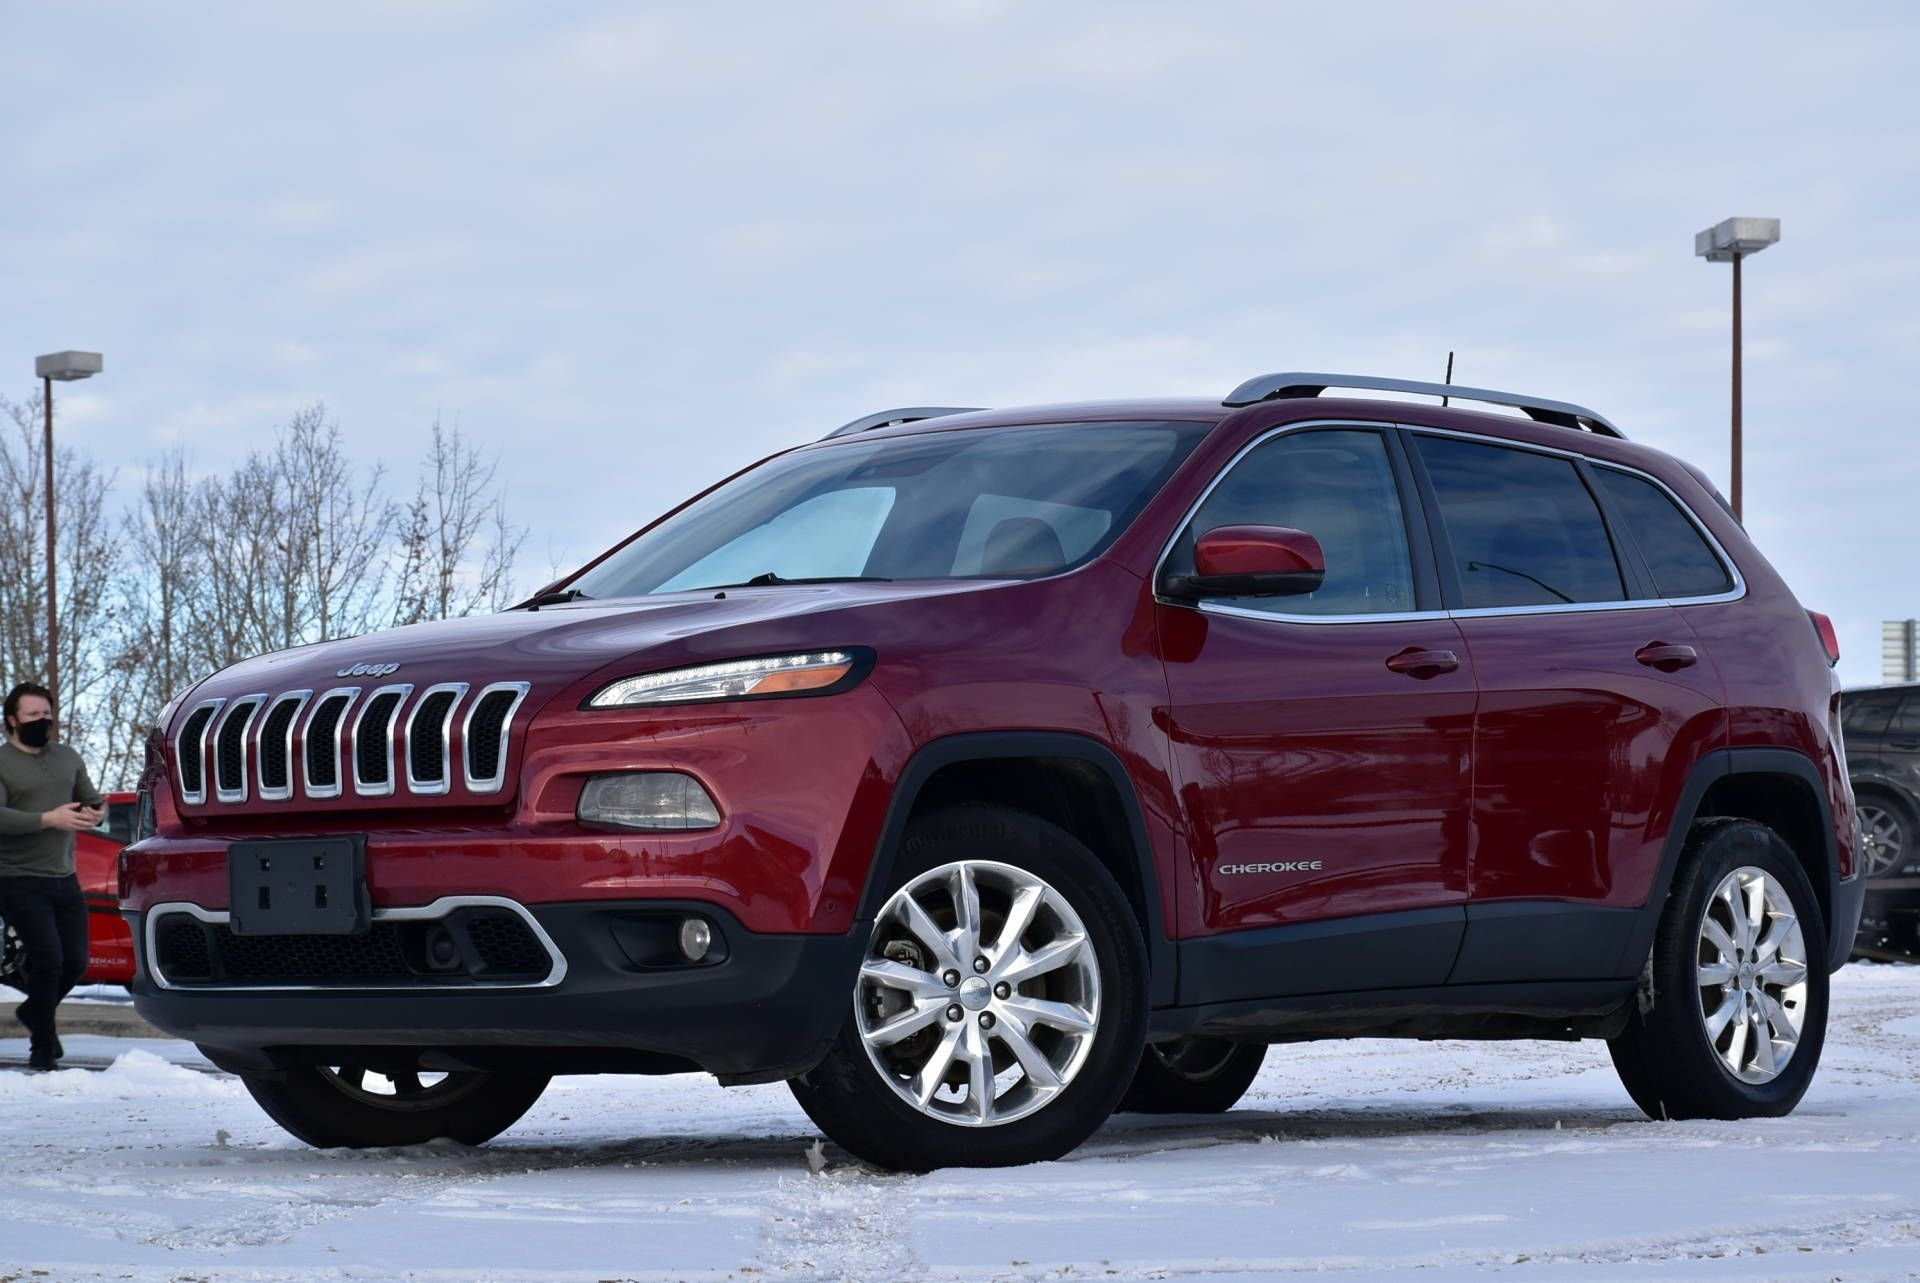 2016 jeep cherokee limited w adaptive cruise